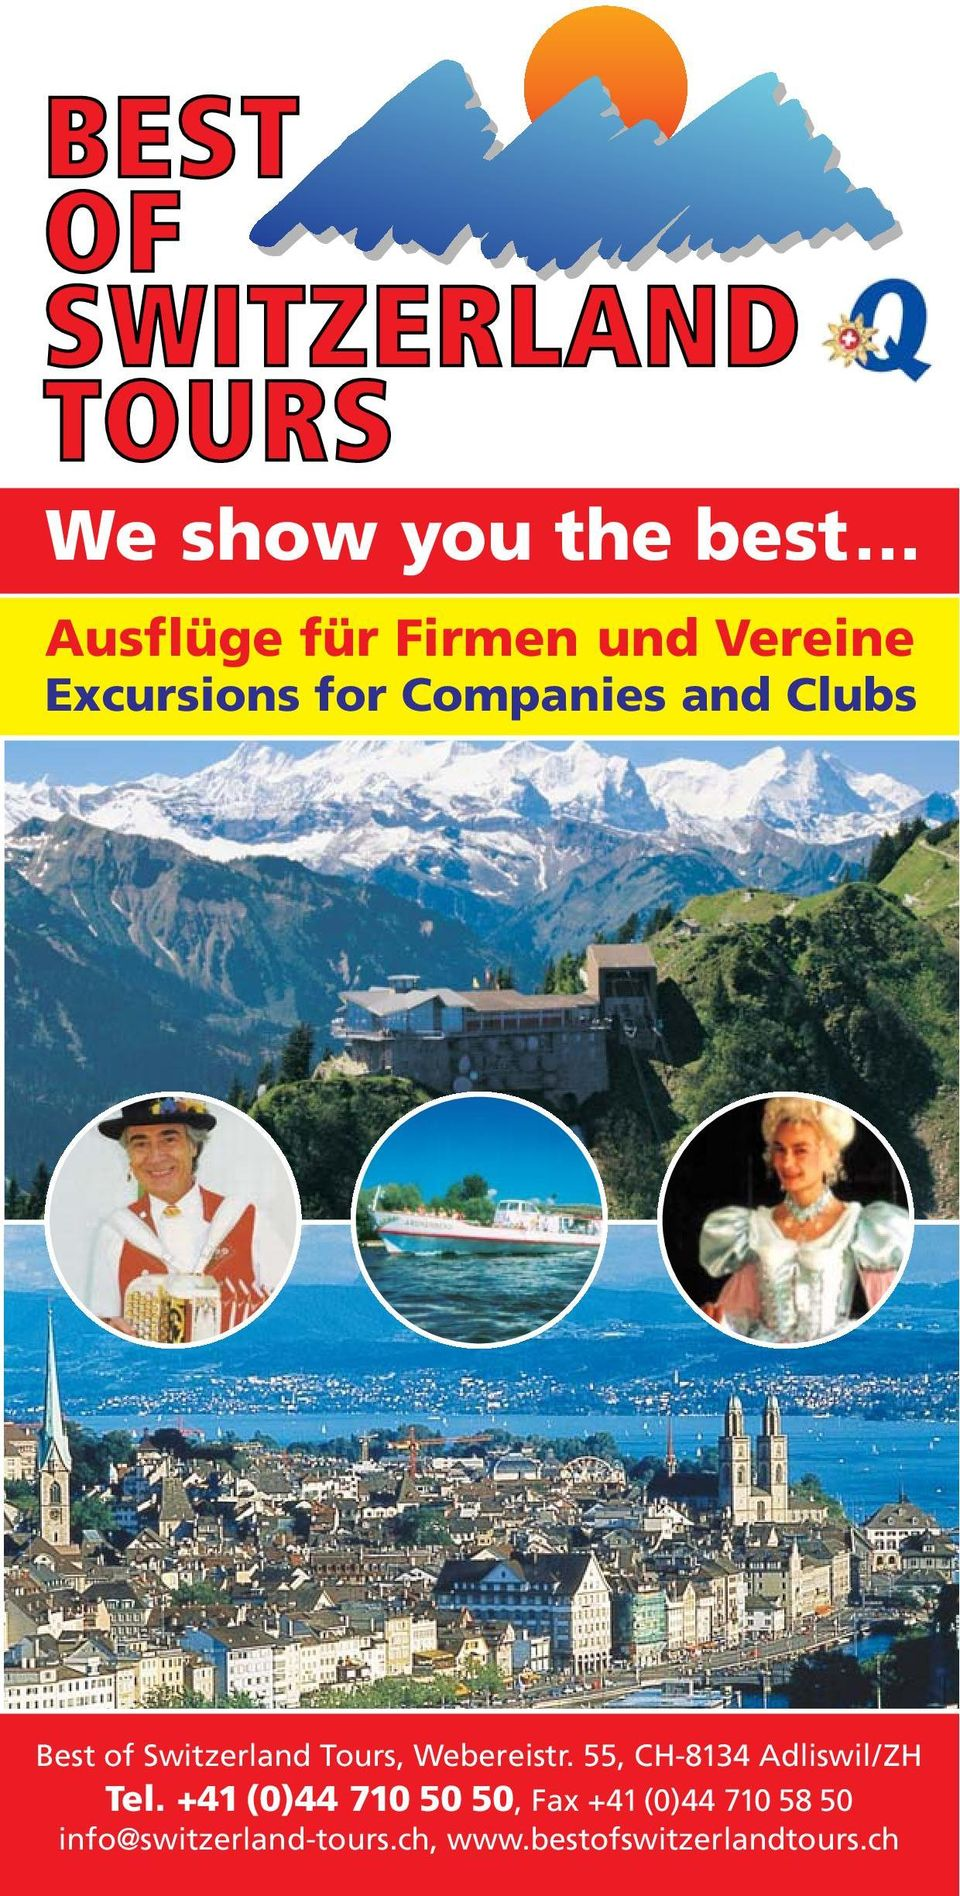 Best of Switzerland Tours, Webereistr. 55, CH-8134 Adliswil/ZH Tel.